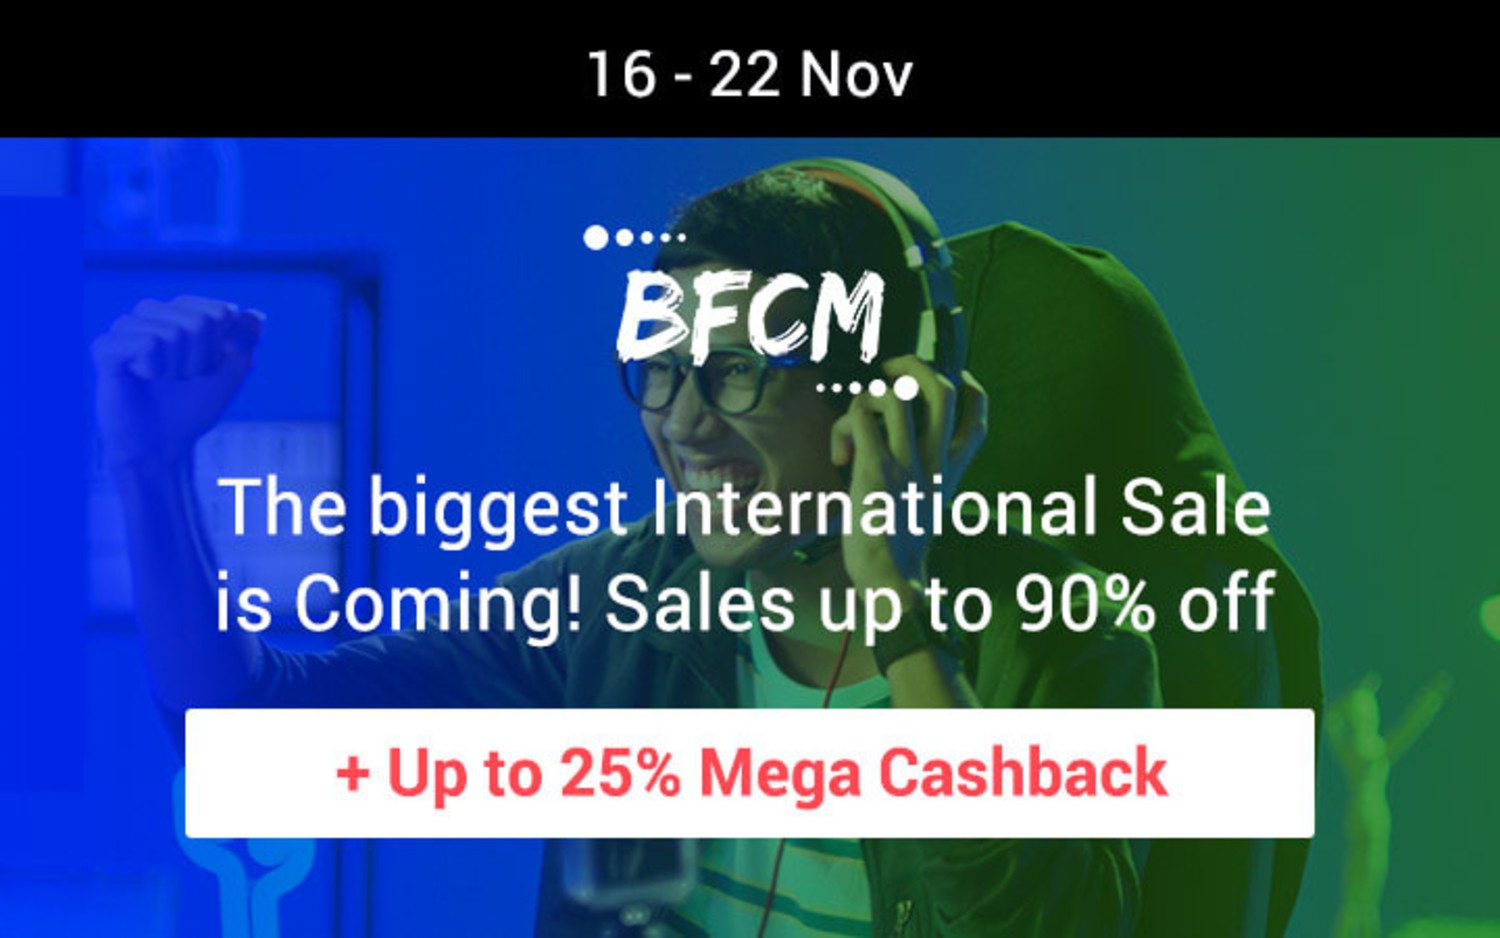 The biggest International Sale is Coming!  Sales up to 90% off + Up to 25% Cashback